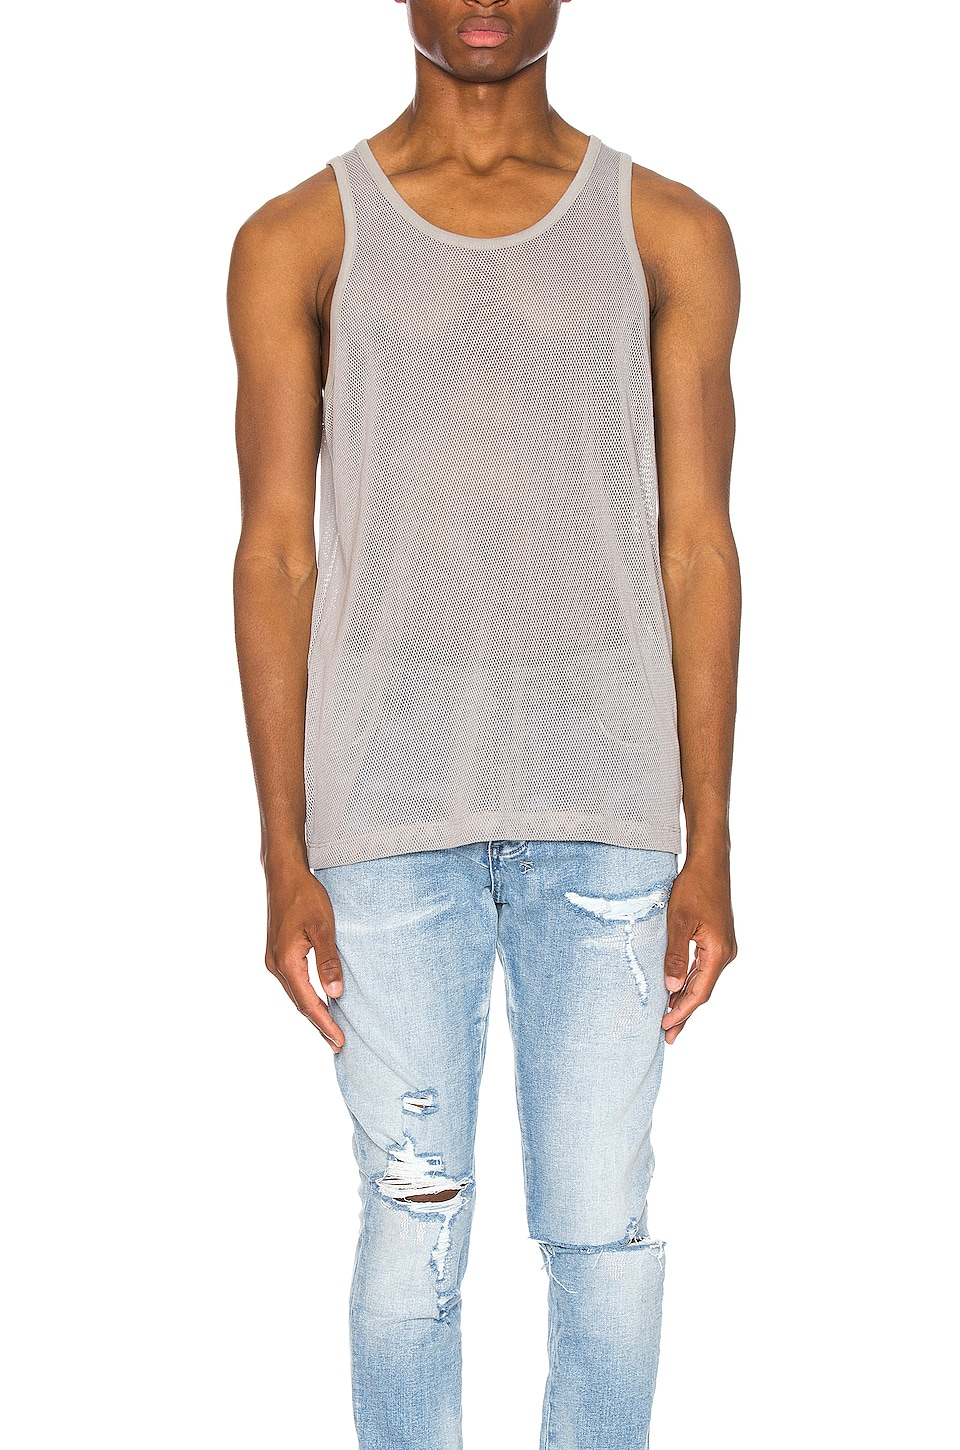 JOHN ELLIOTT Cotton Mesh Tank in Plaster